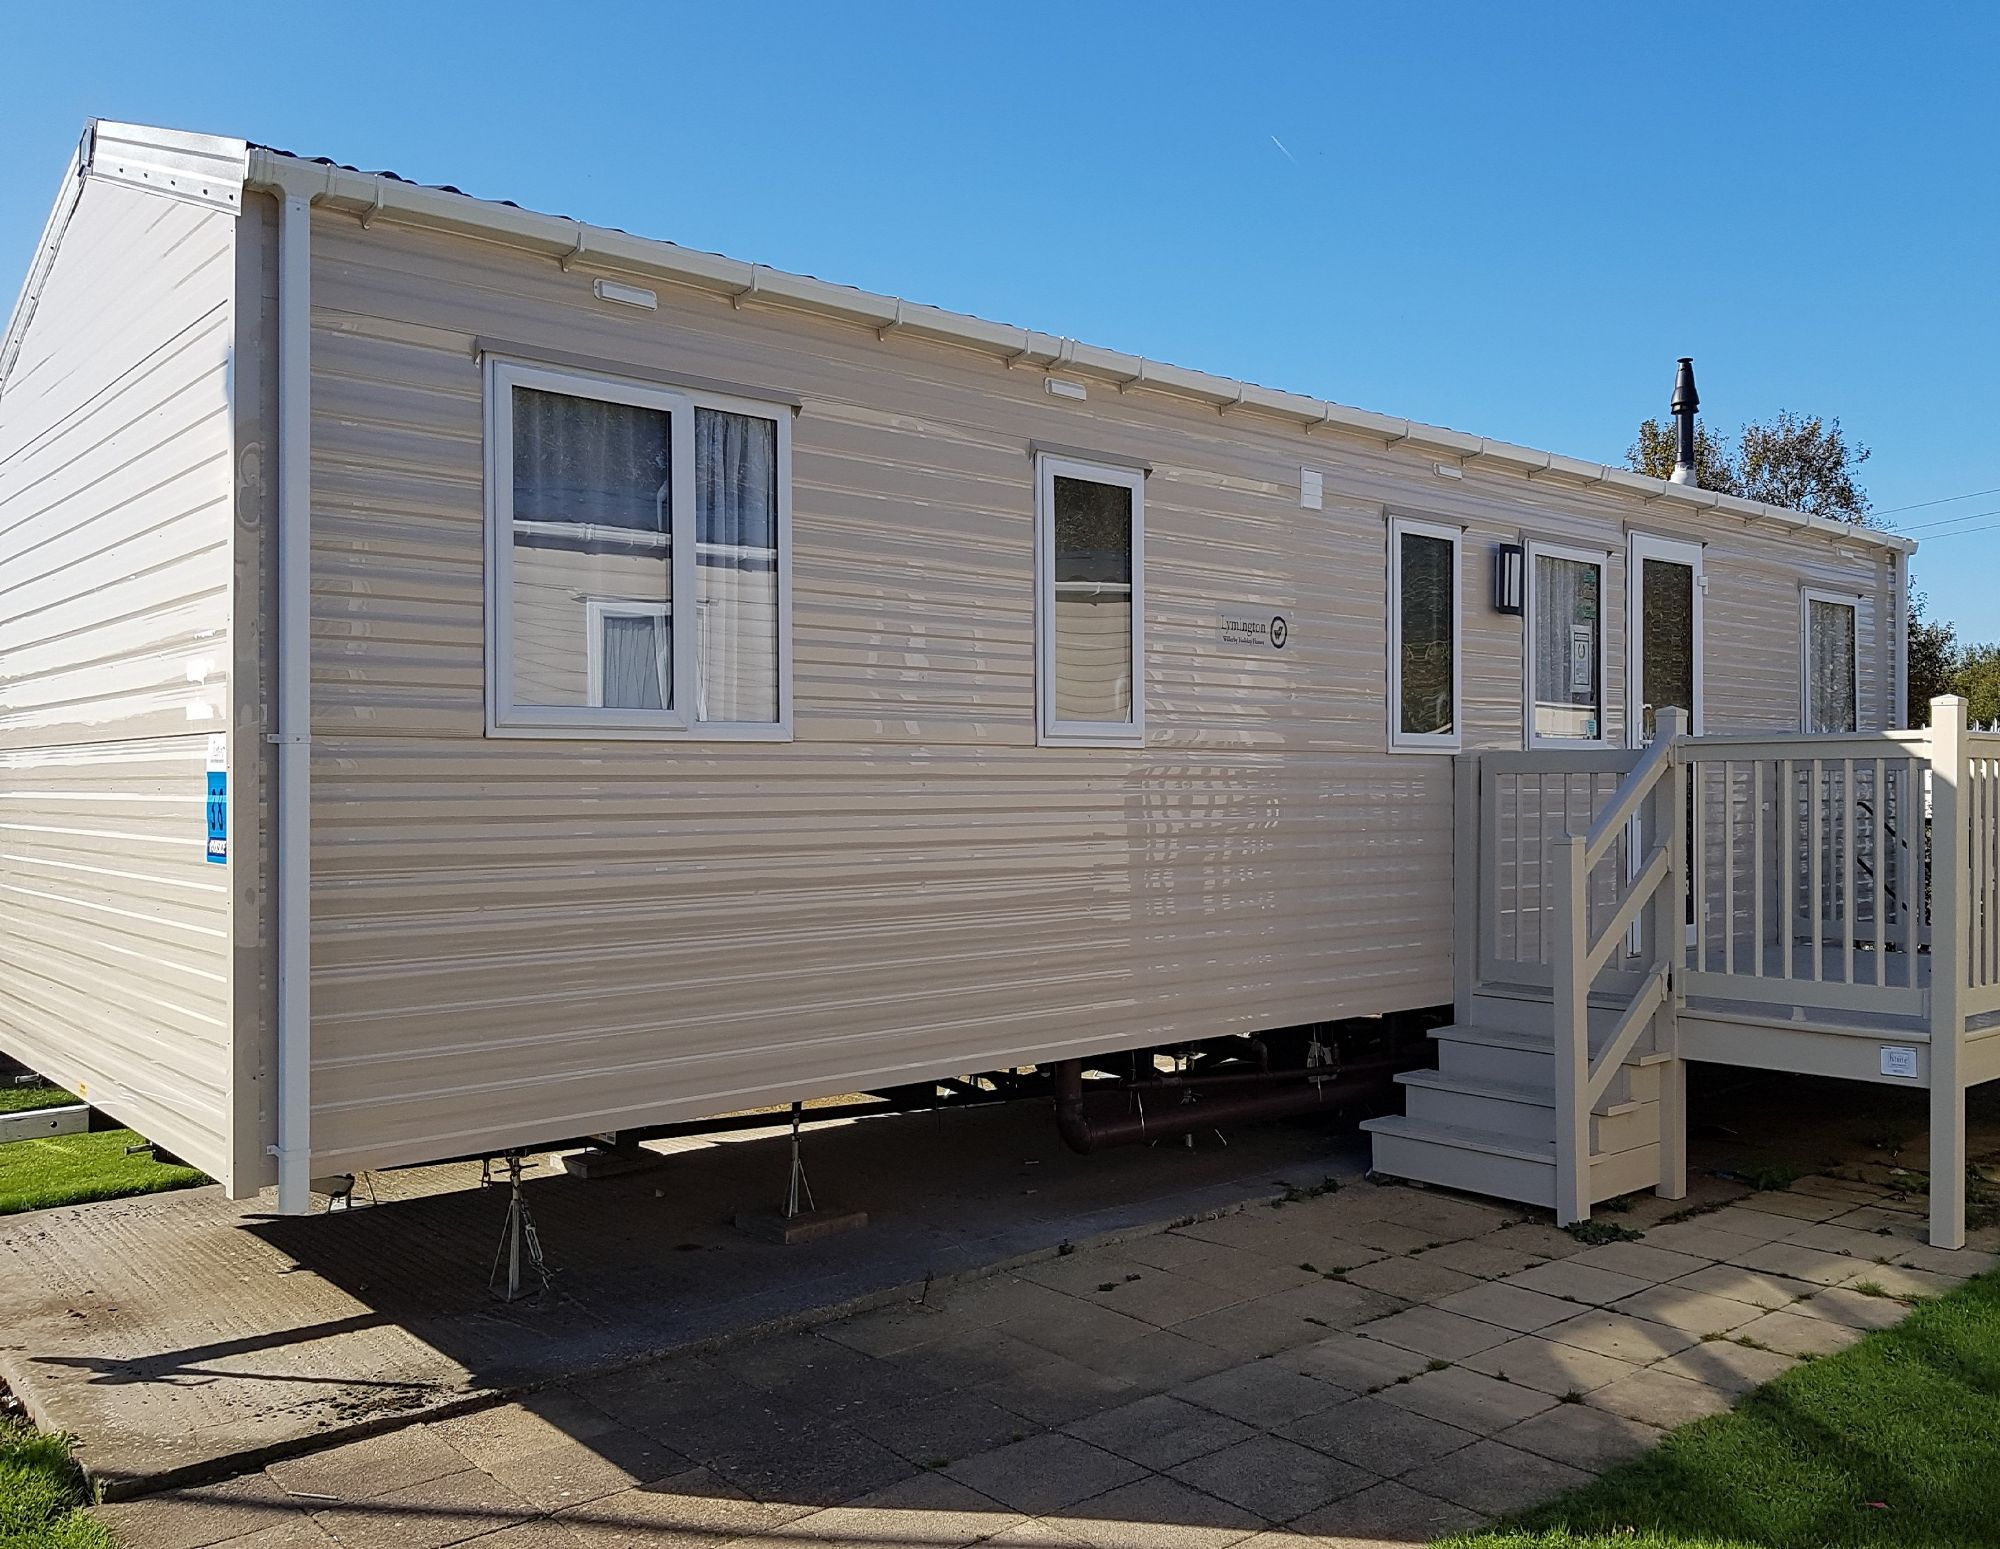 Butlins Skegness 4 Bedroom Caravan Hire